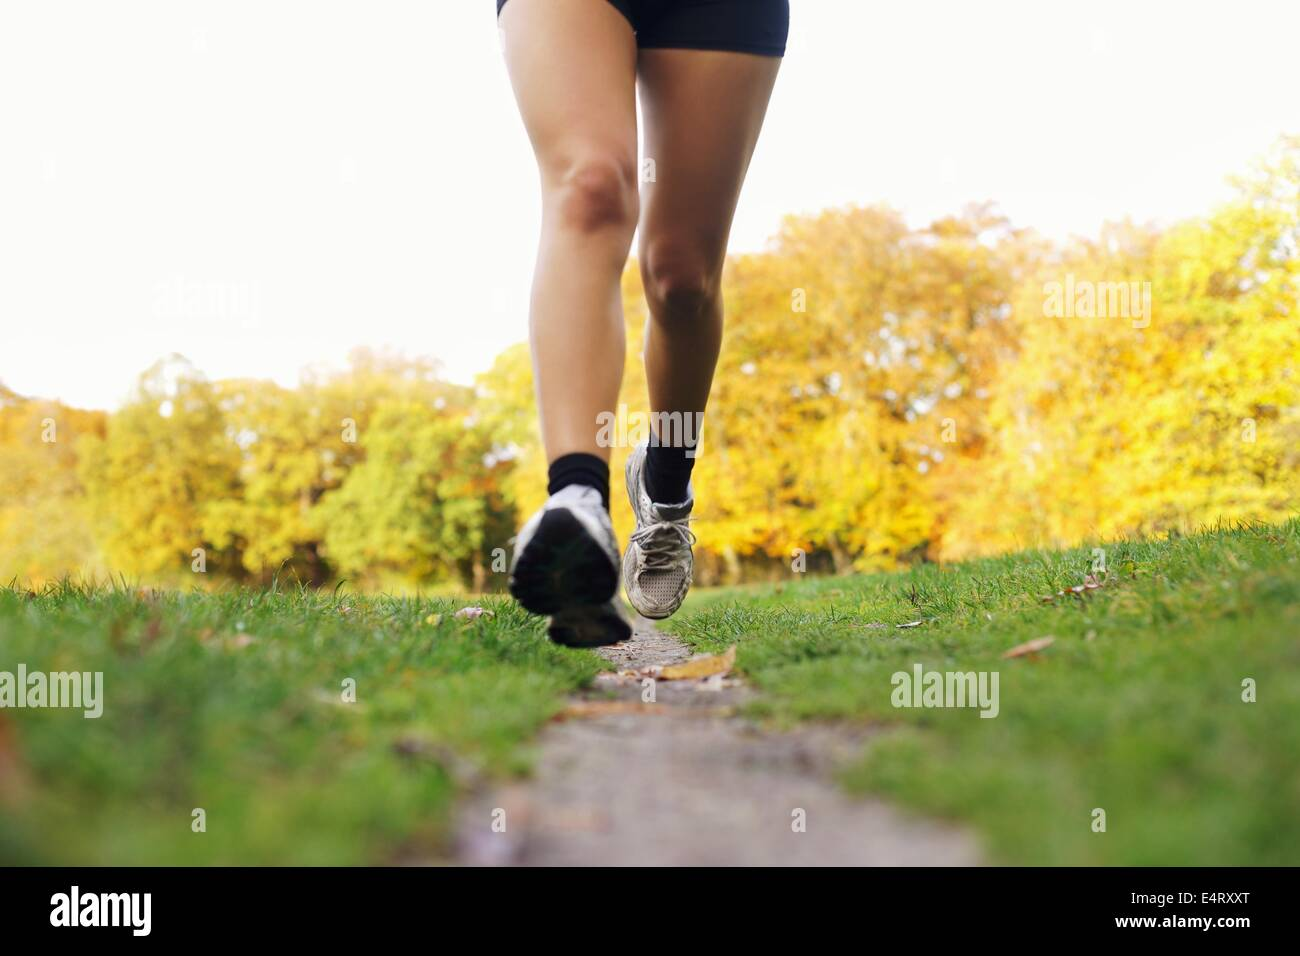 Close-up of feet of a runner running in park. Woman training for fitness. Female legs jogging in park - Outdoors - Stock Image